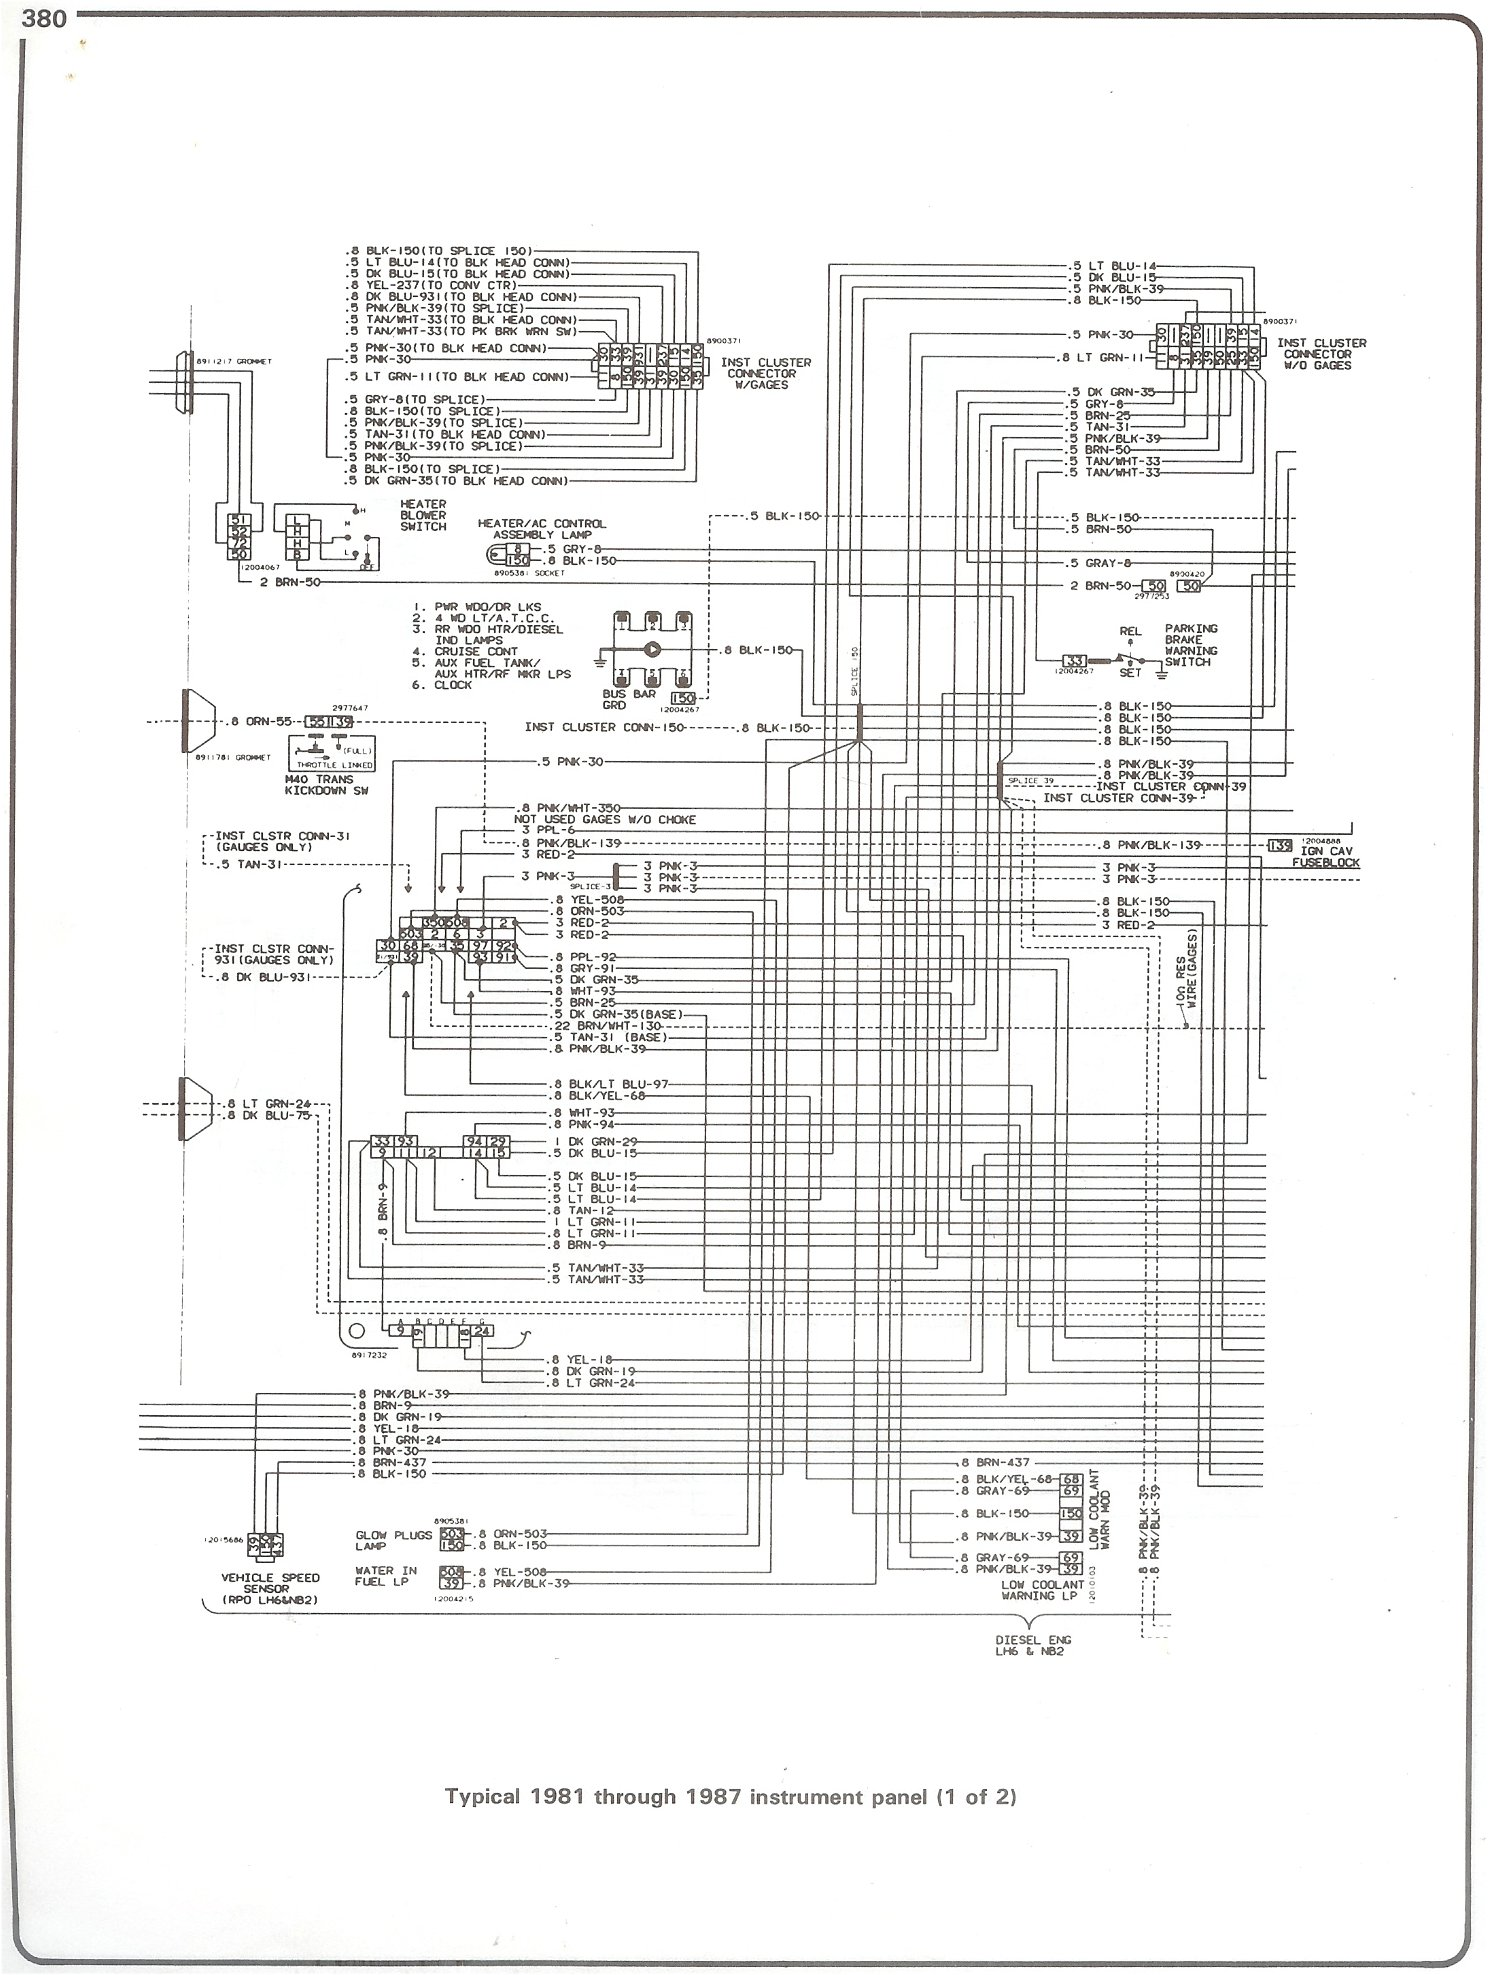 1985 gmc truck wiring diagram wiring diagram table 1987 gmc sierra window wires 1985 gmc sierra wiring diagram #5